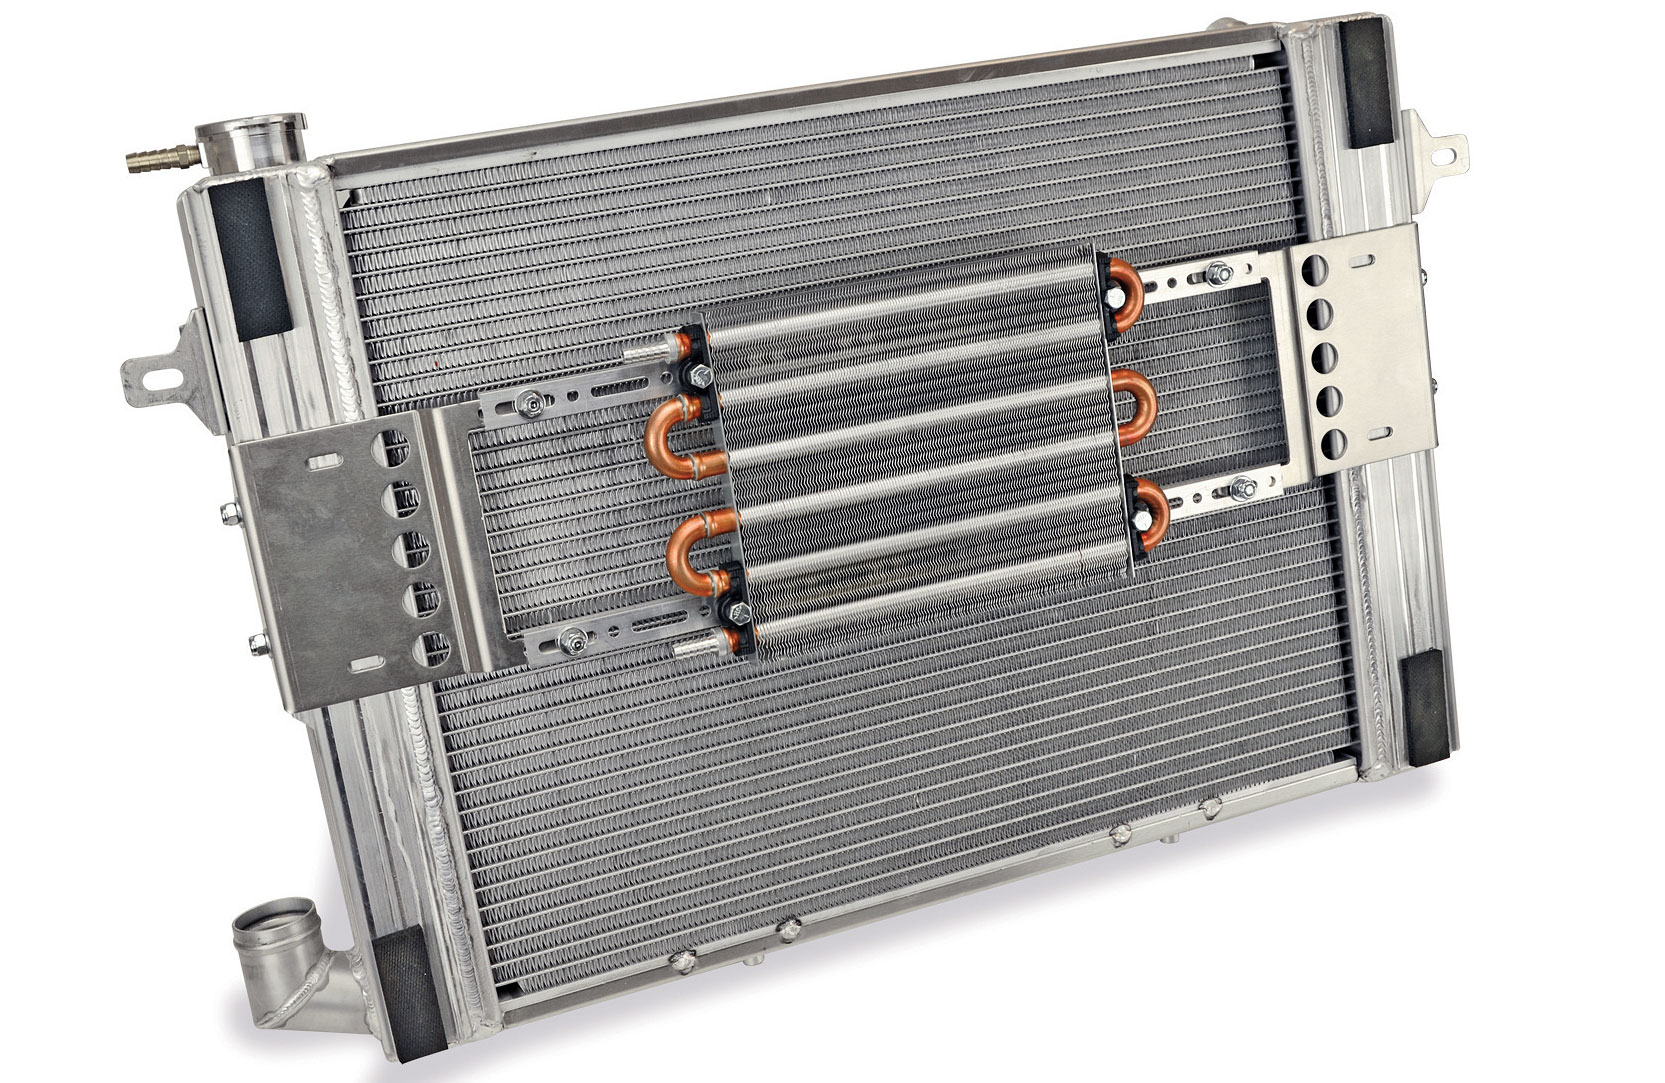 The dual 15-inch electric fans move up to 6,800 cfm of airflow. The entire core surface of the radiator is covered with a sealed shroud design.